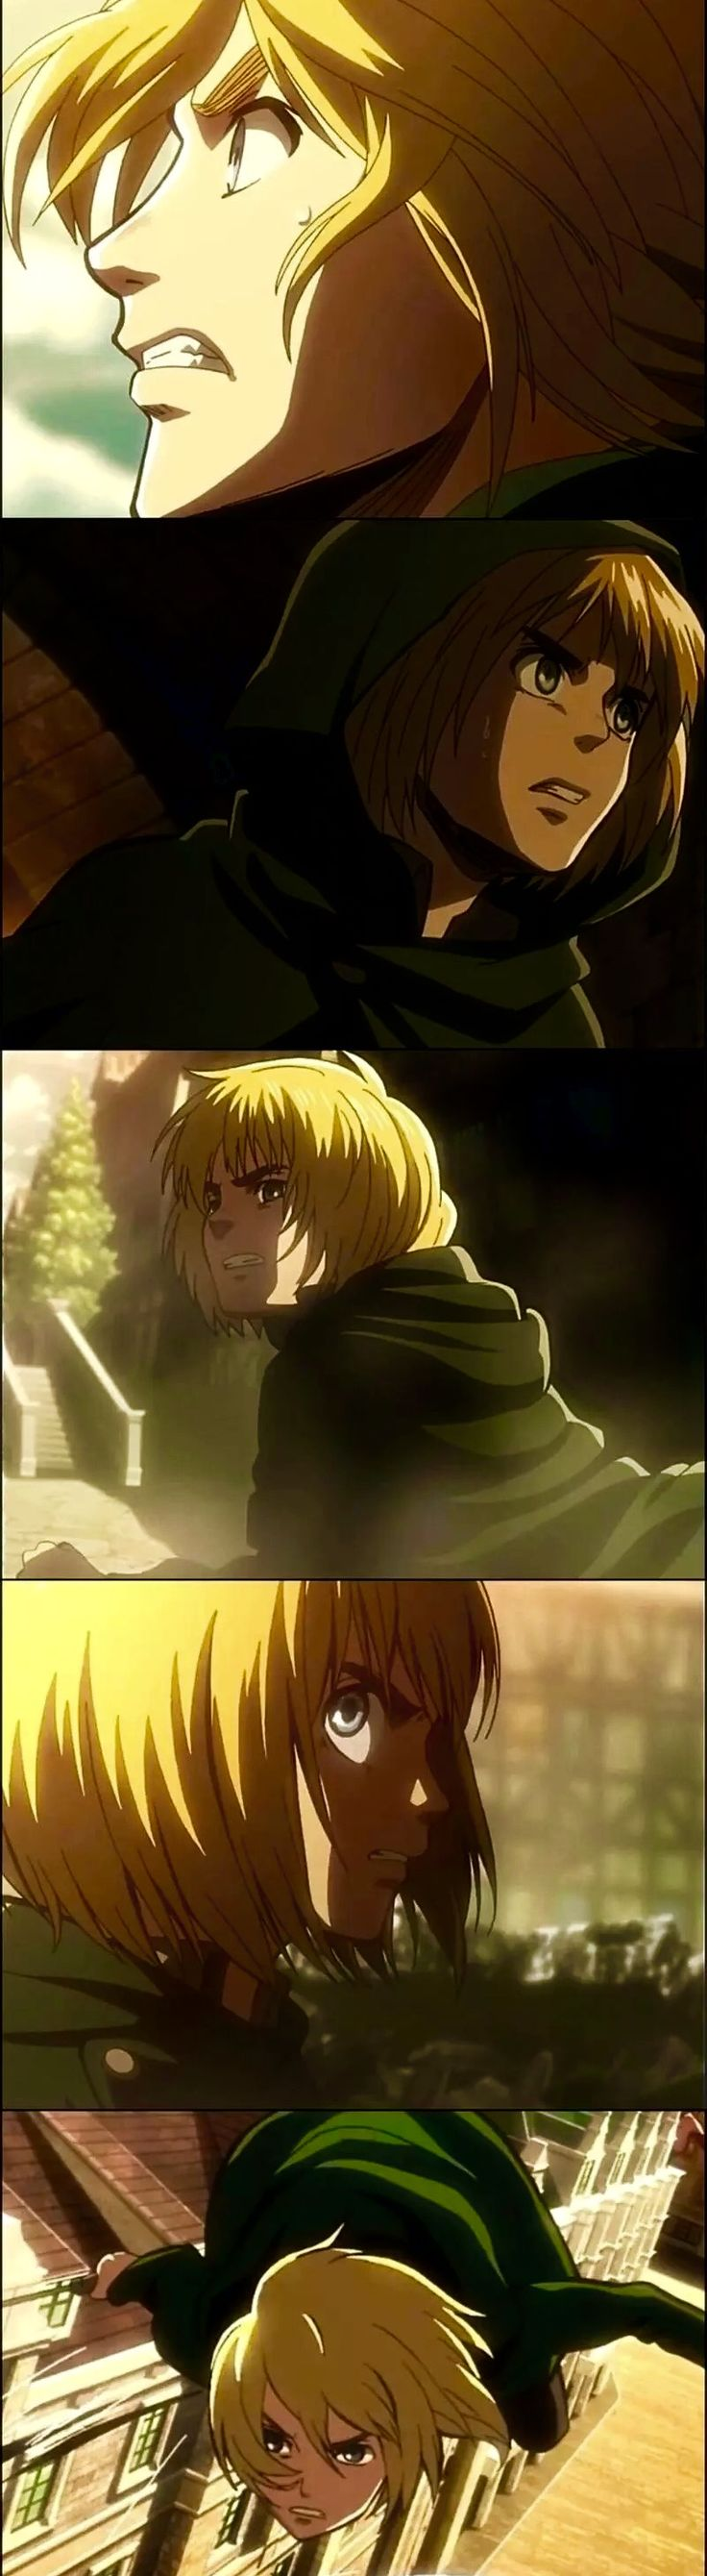 Armin Arlert looking super attractive at these angles      Pinning again ------ HE LOOKS ATTRACTIVE IN ALL ANGLES U SHITHEAD!!!!